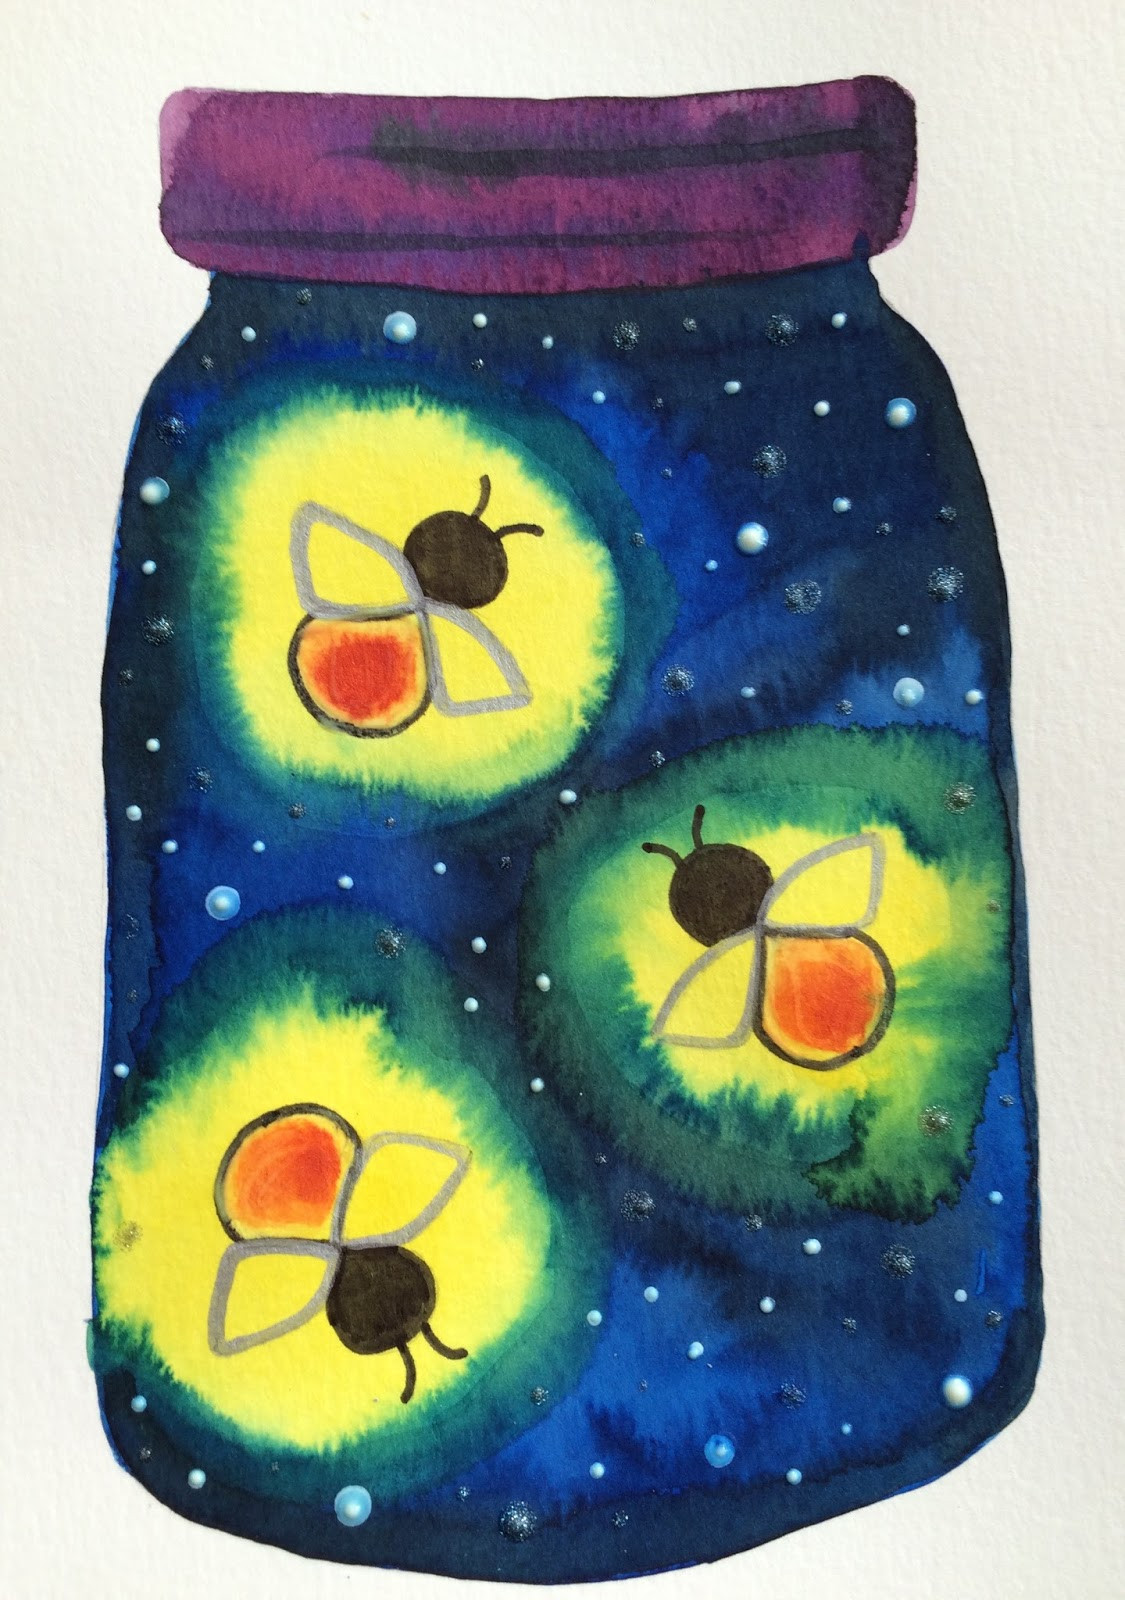 Best ideas about Summer Art Project For Kids . Save or Pin Kathy s AngelNik Designs & Art Project Ideas Glow in The Now.